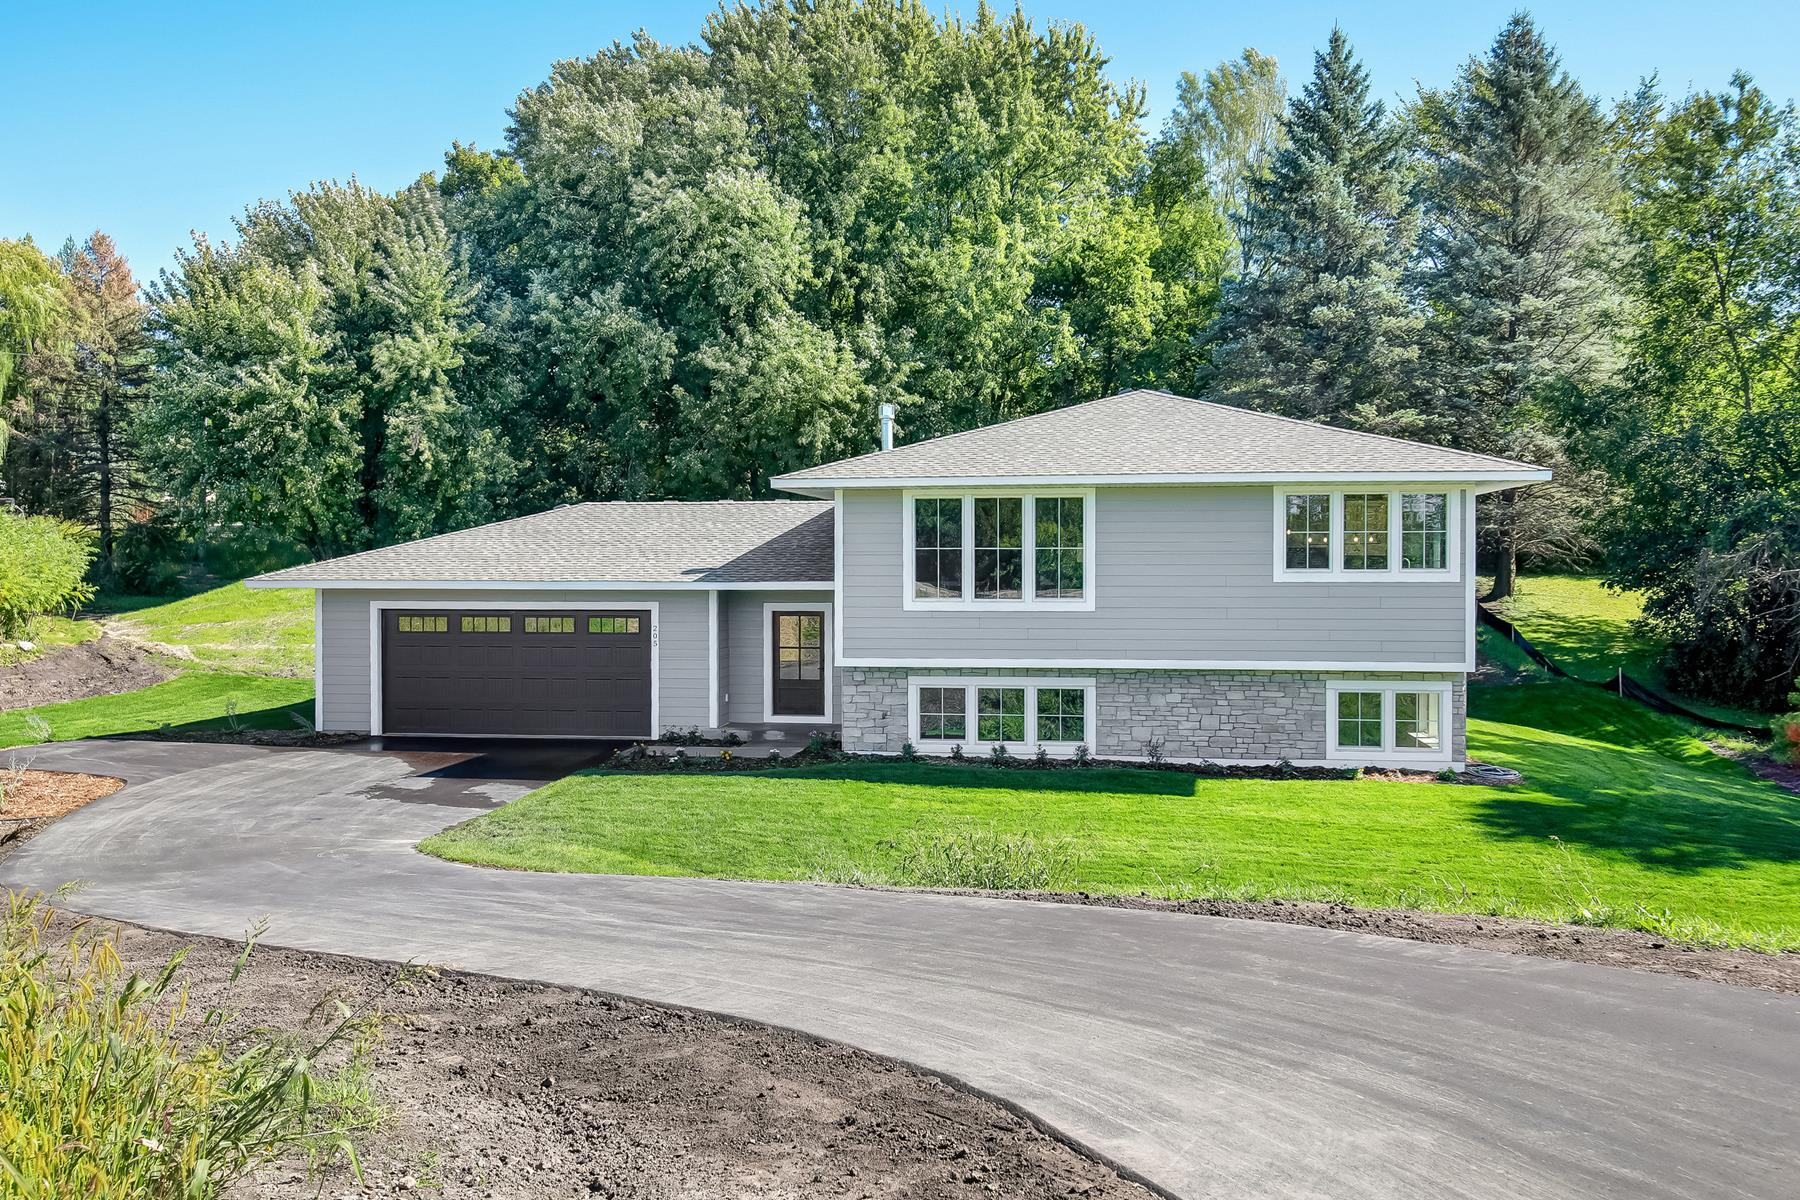 Single Family Homes for Sale at Beautiful New Construction on Private Lot in Minnetrista 205 County Road 110 North Minnetrista, Minnesota 55364 United States